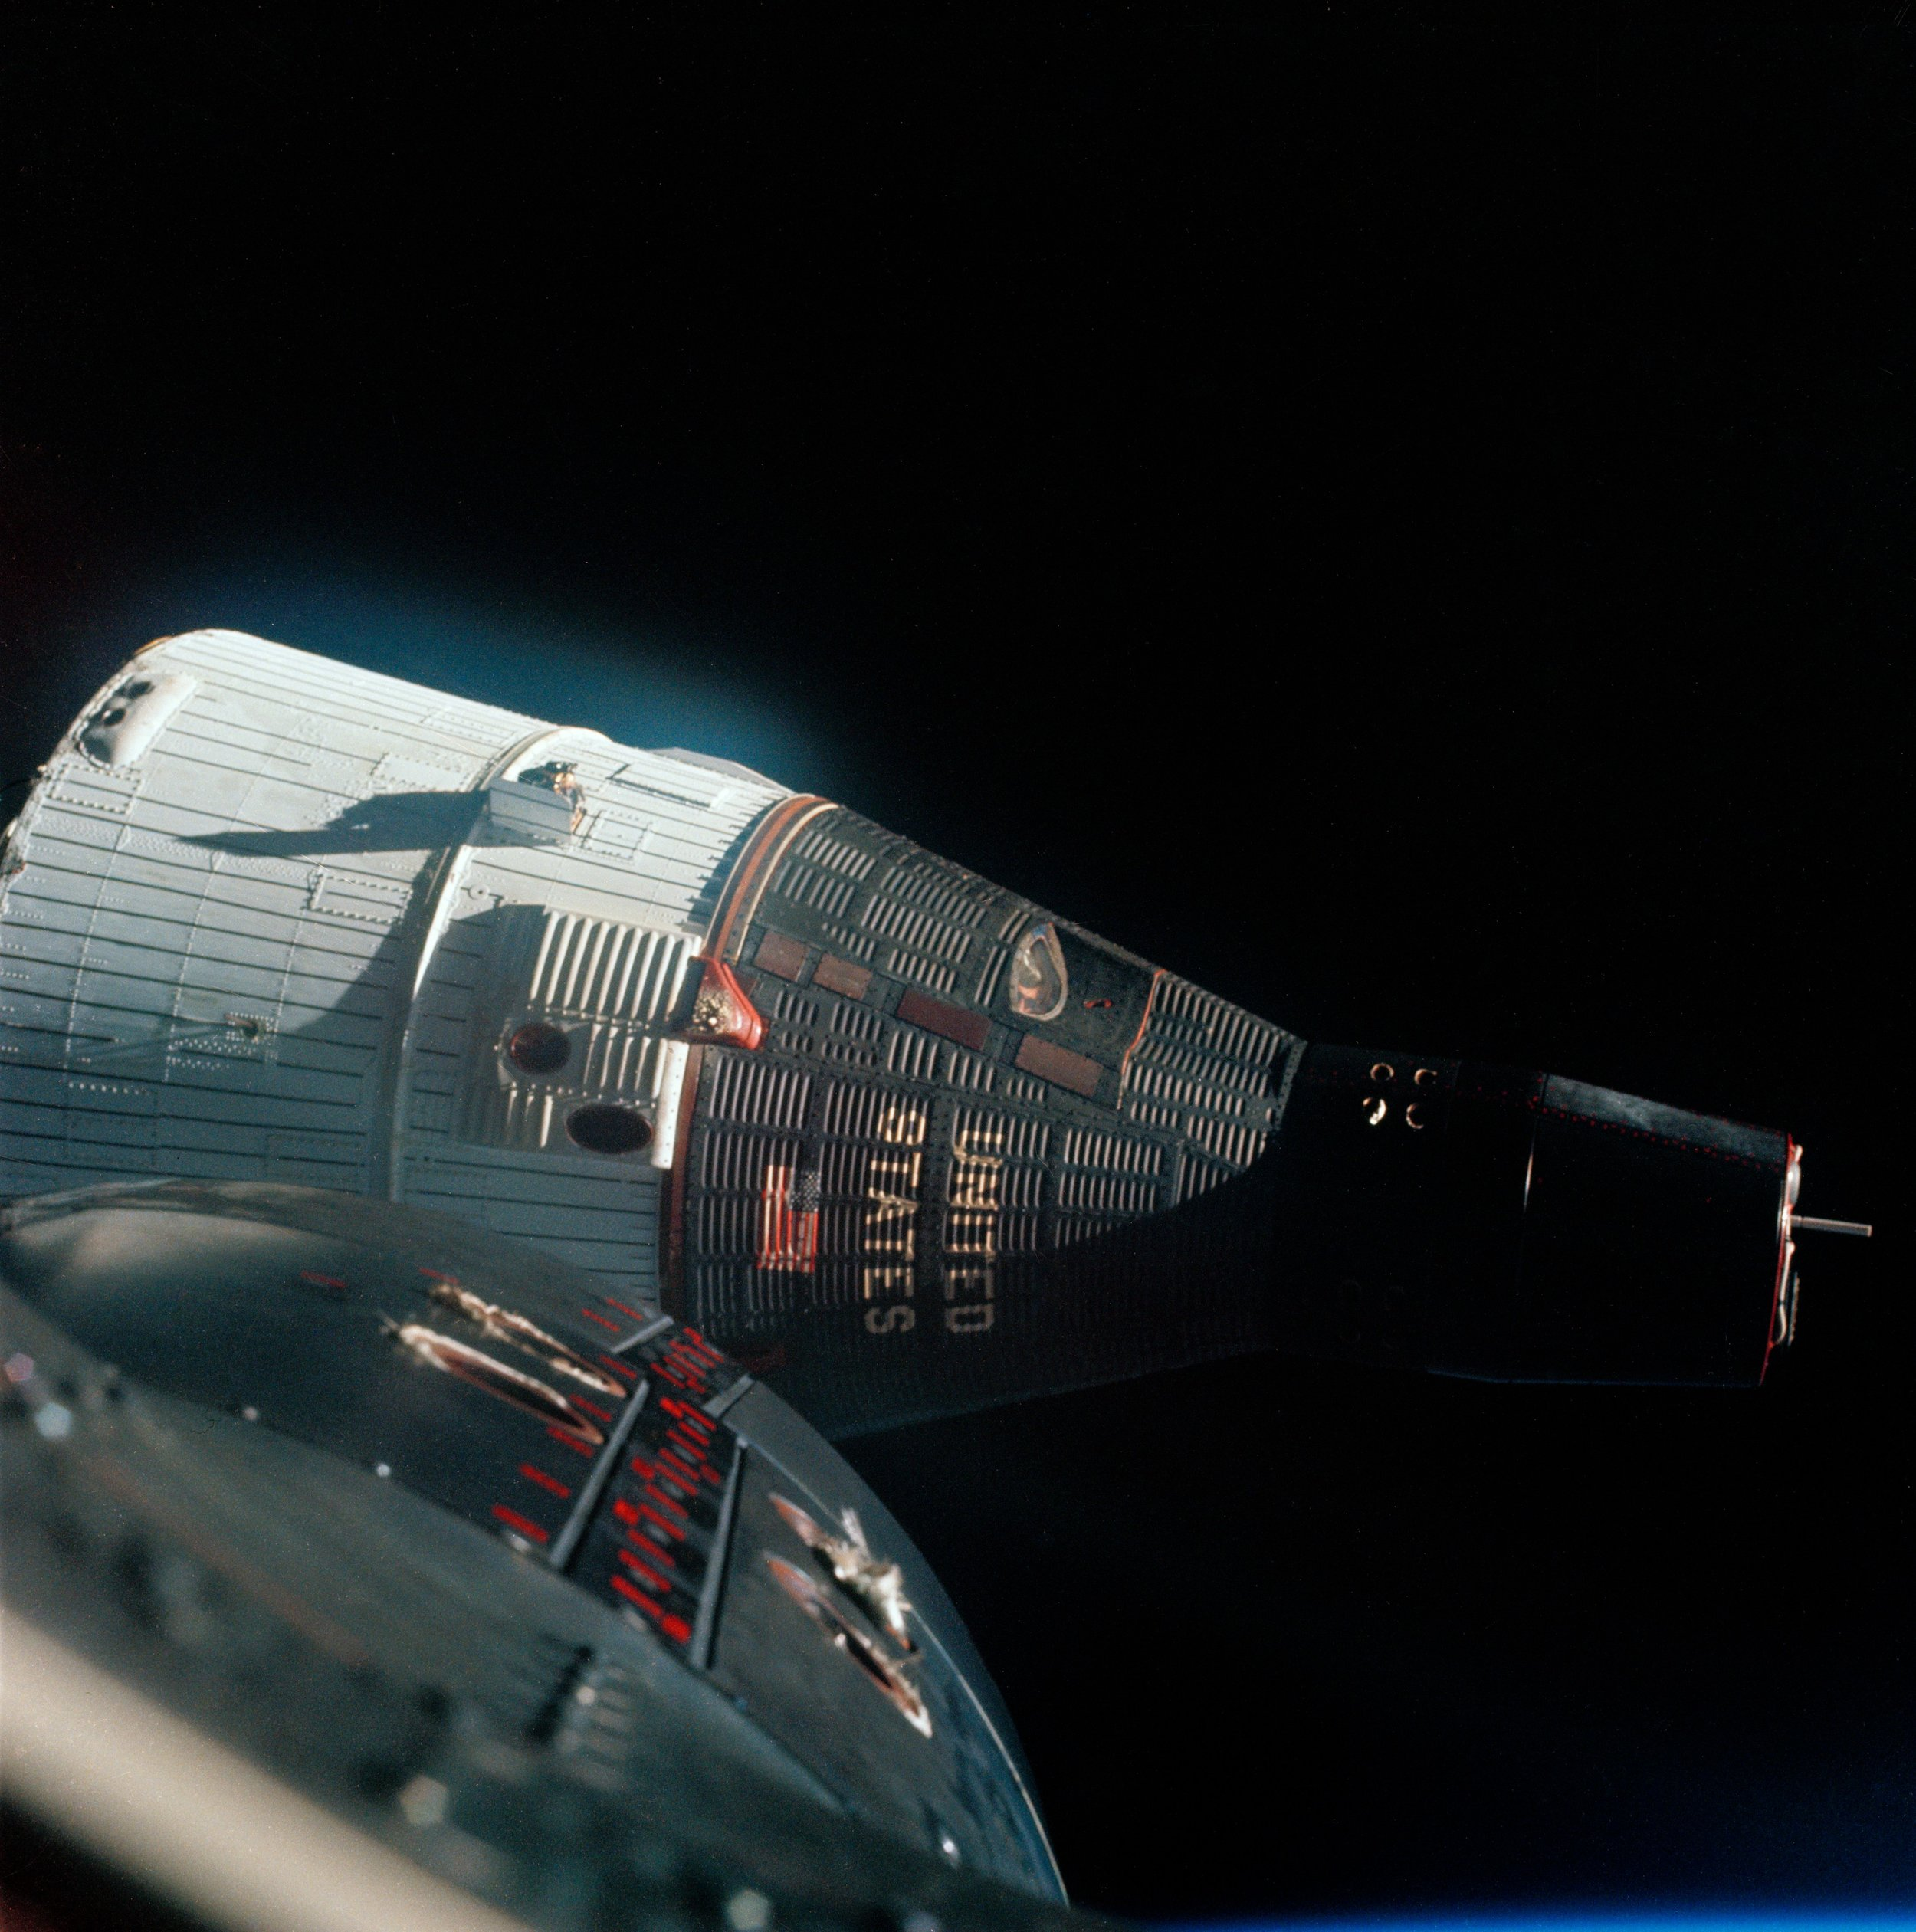 Photograph of the Gemini VII spacecraft -